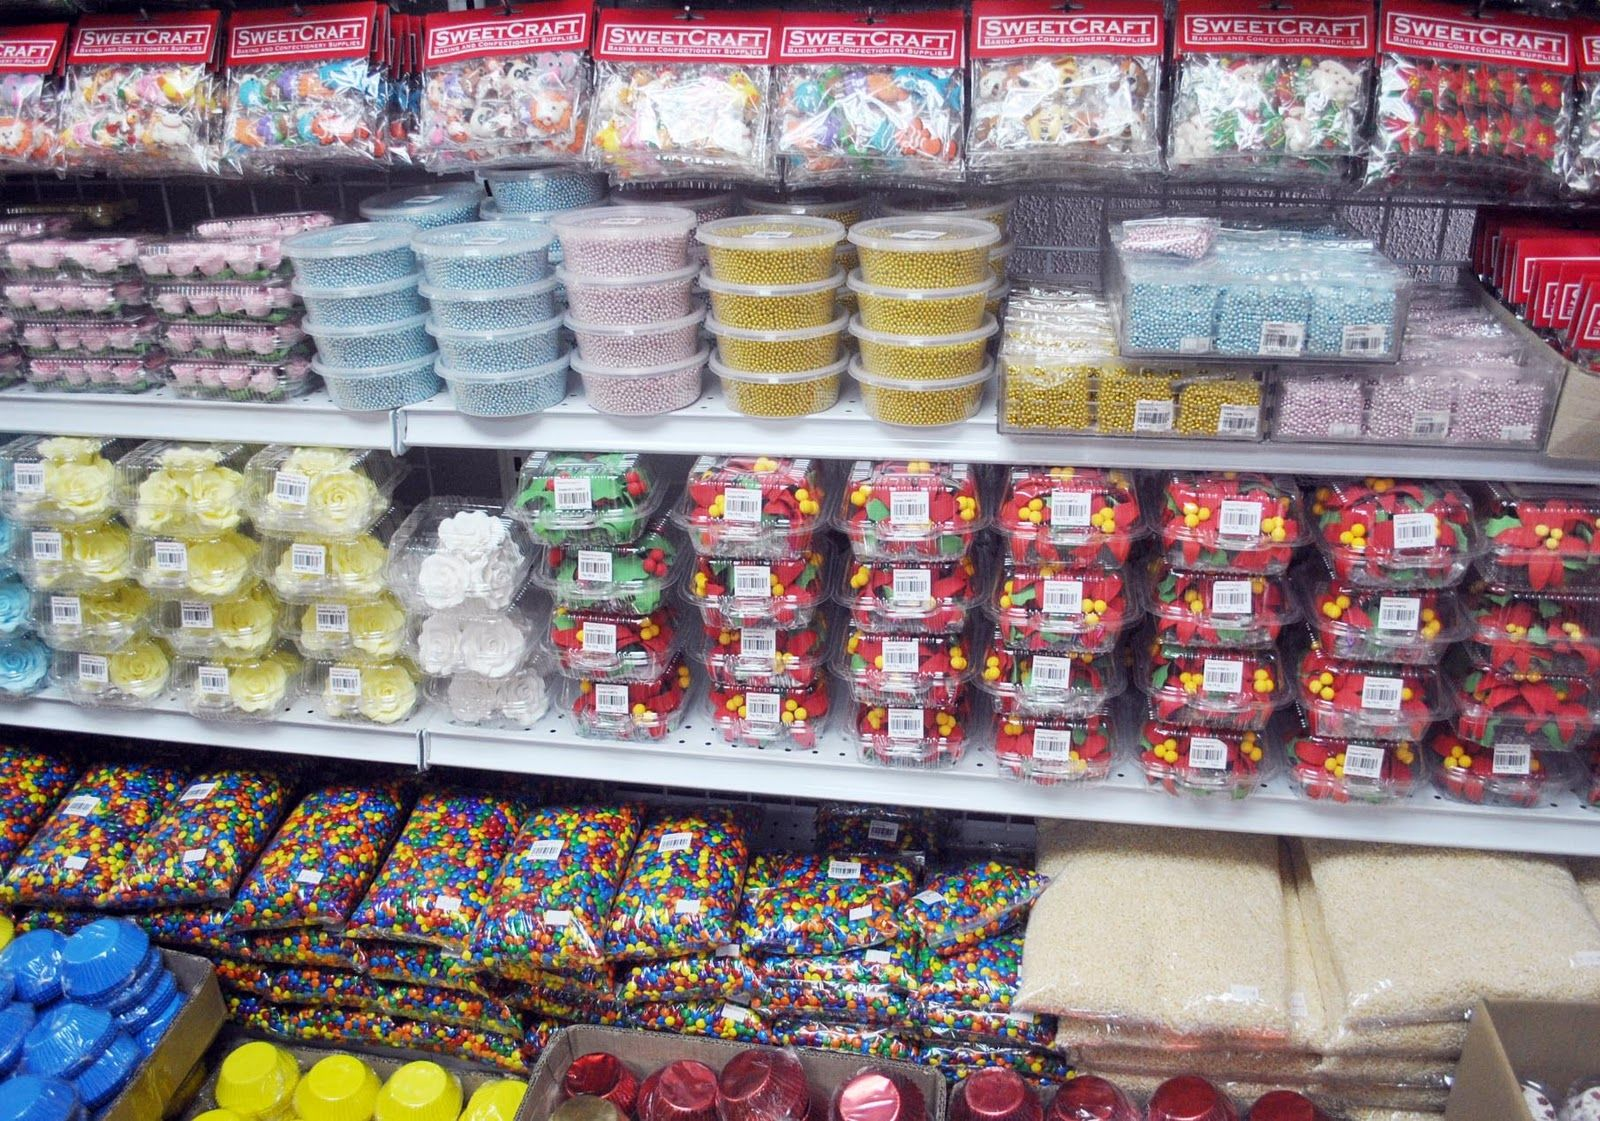 Baking Supplie Stores Baking Supplies Store Sweetcraft Baking And Confectionery Supplies Confectionary Shop Cake Supply Store Baking Supply Store